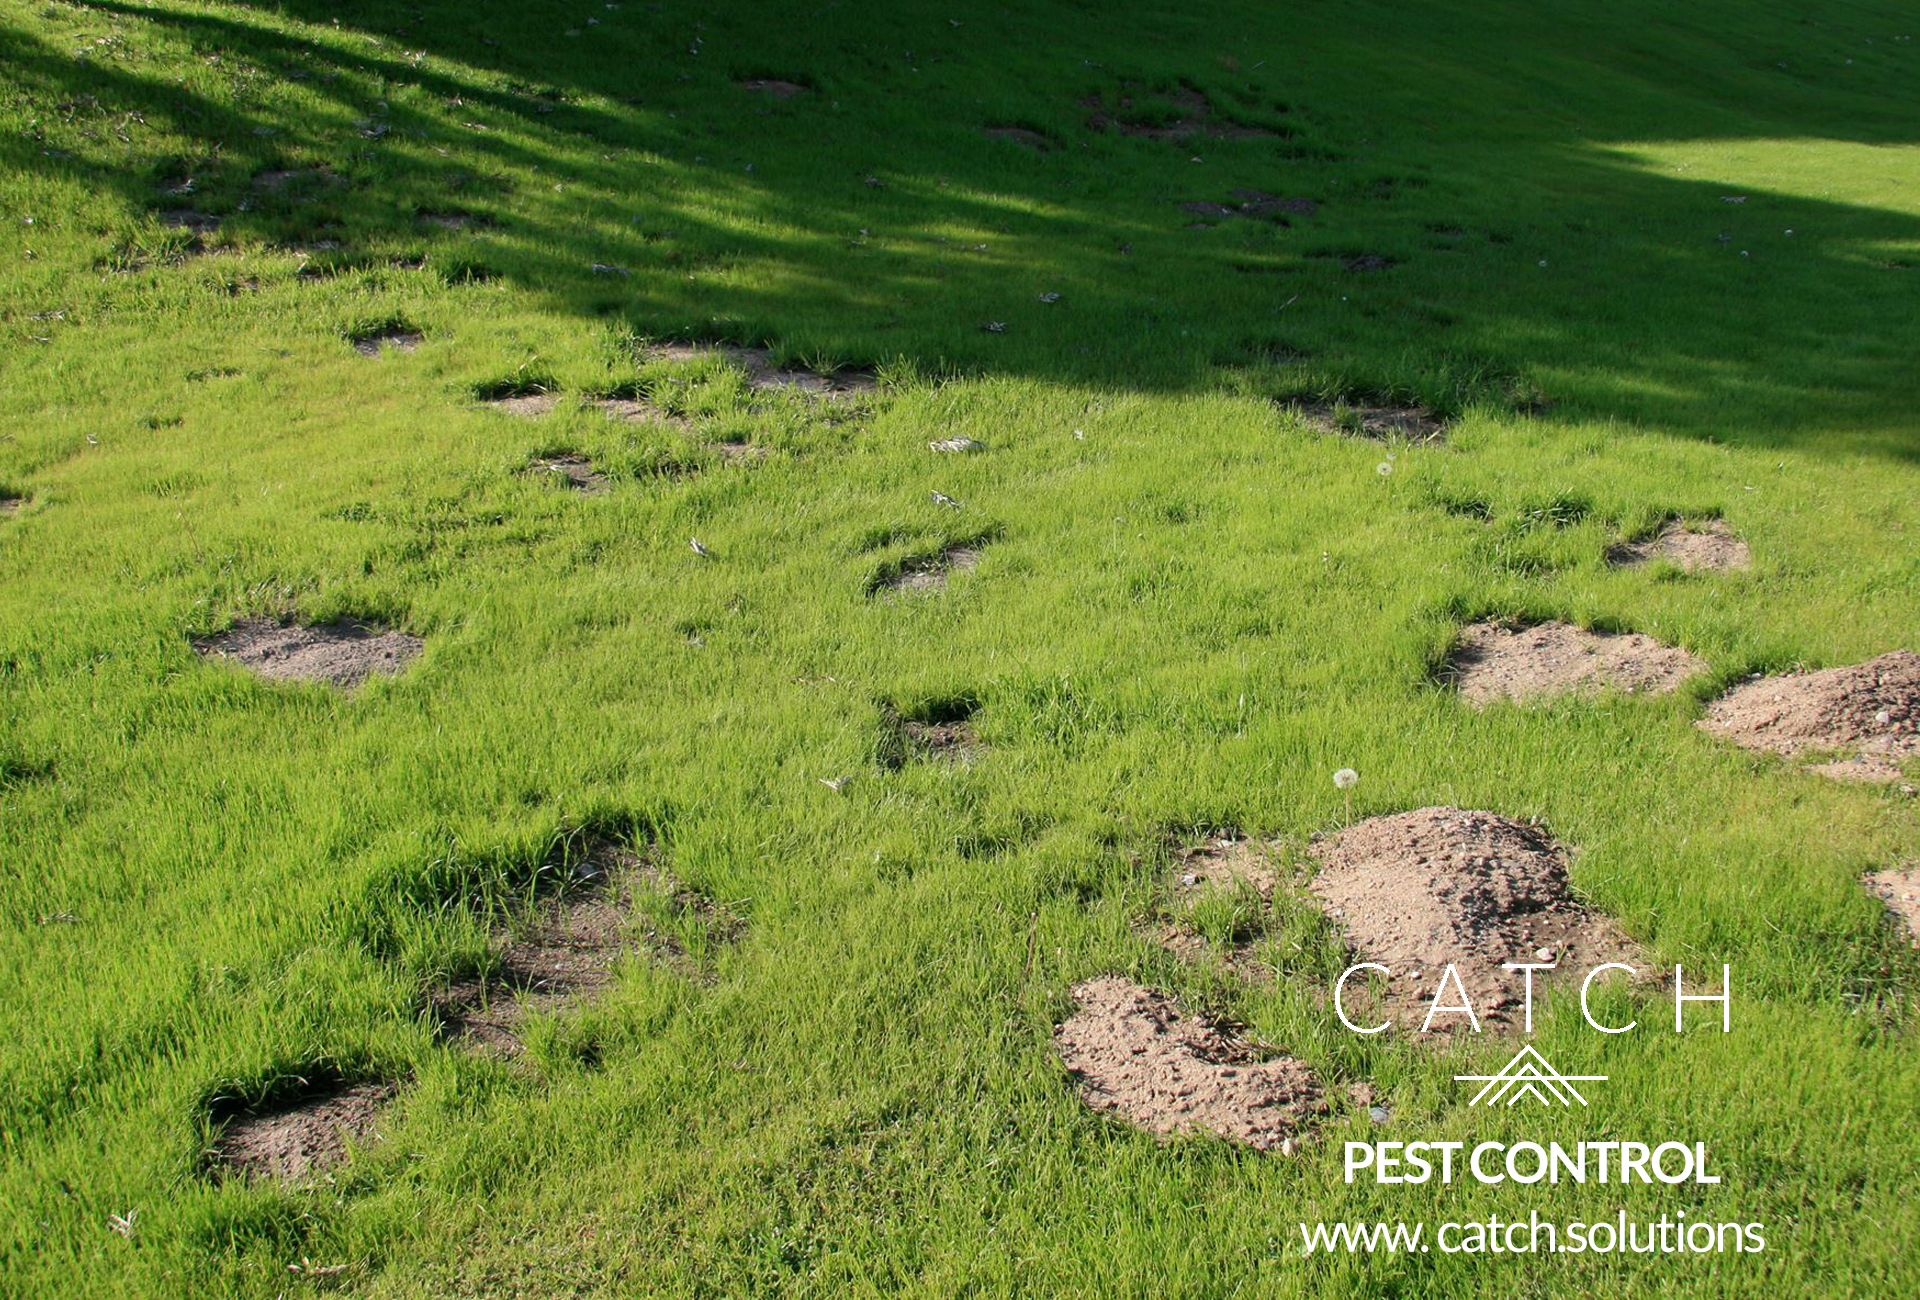 gopher pest control removal services child and pet safe